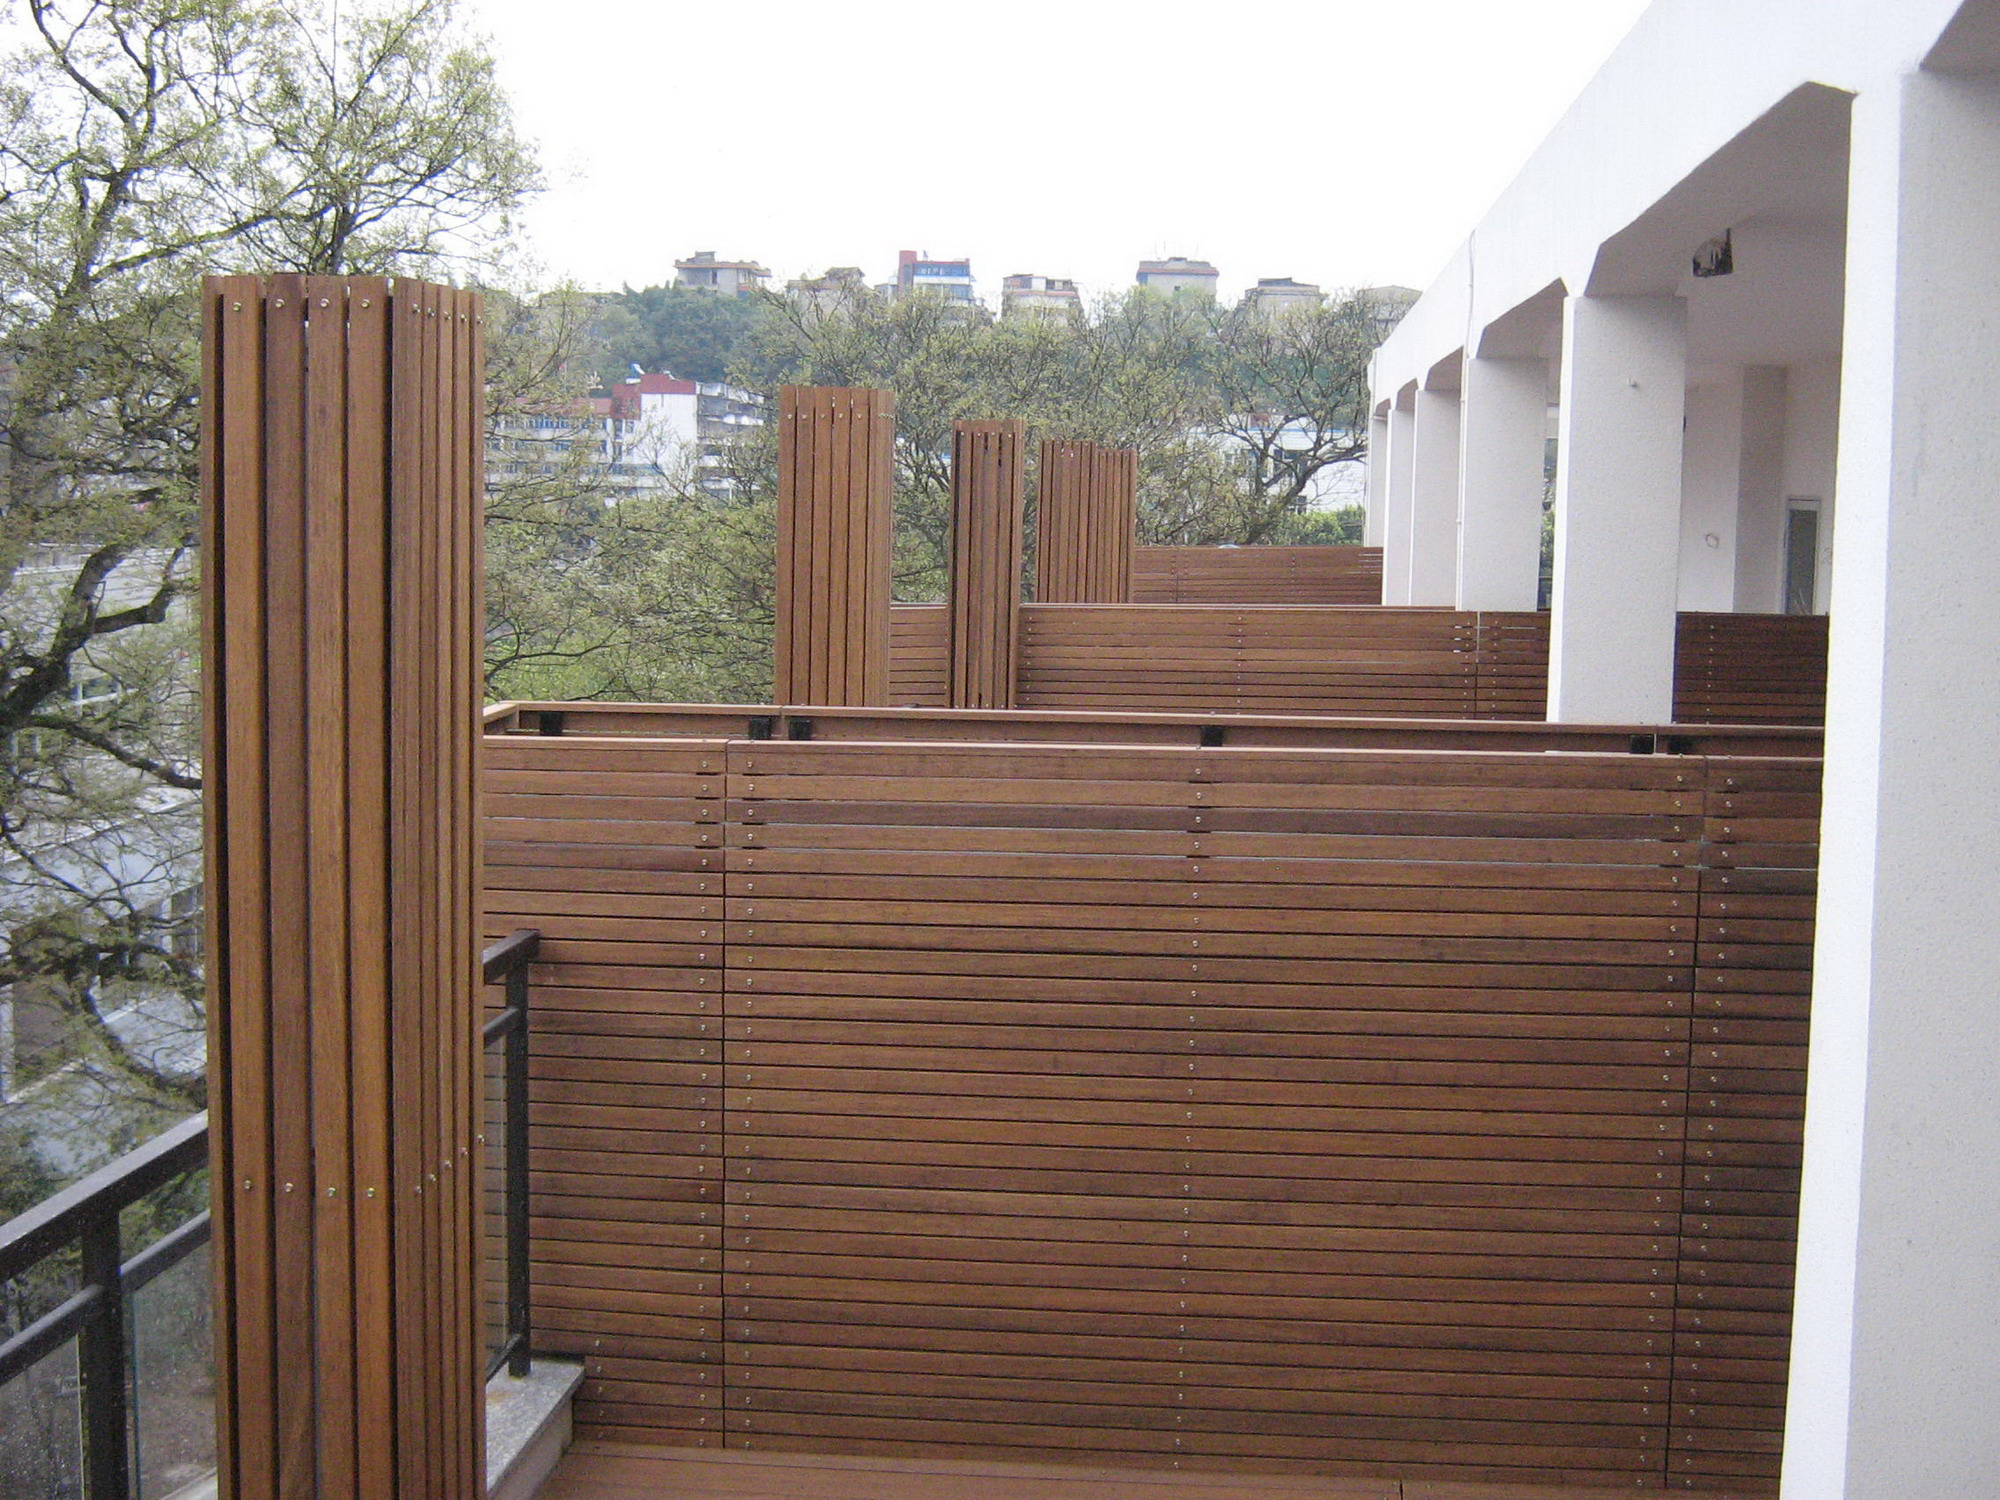 Great Designs Of Bamboo Panel Idea For Your Space : Brilliant Modern Minimalist Bamboo Wall Panels Design